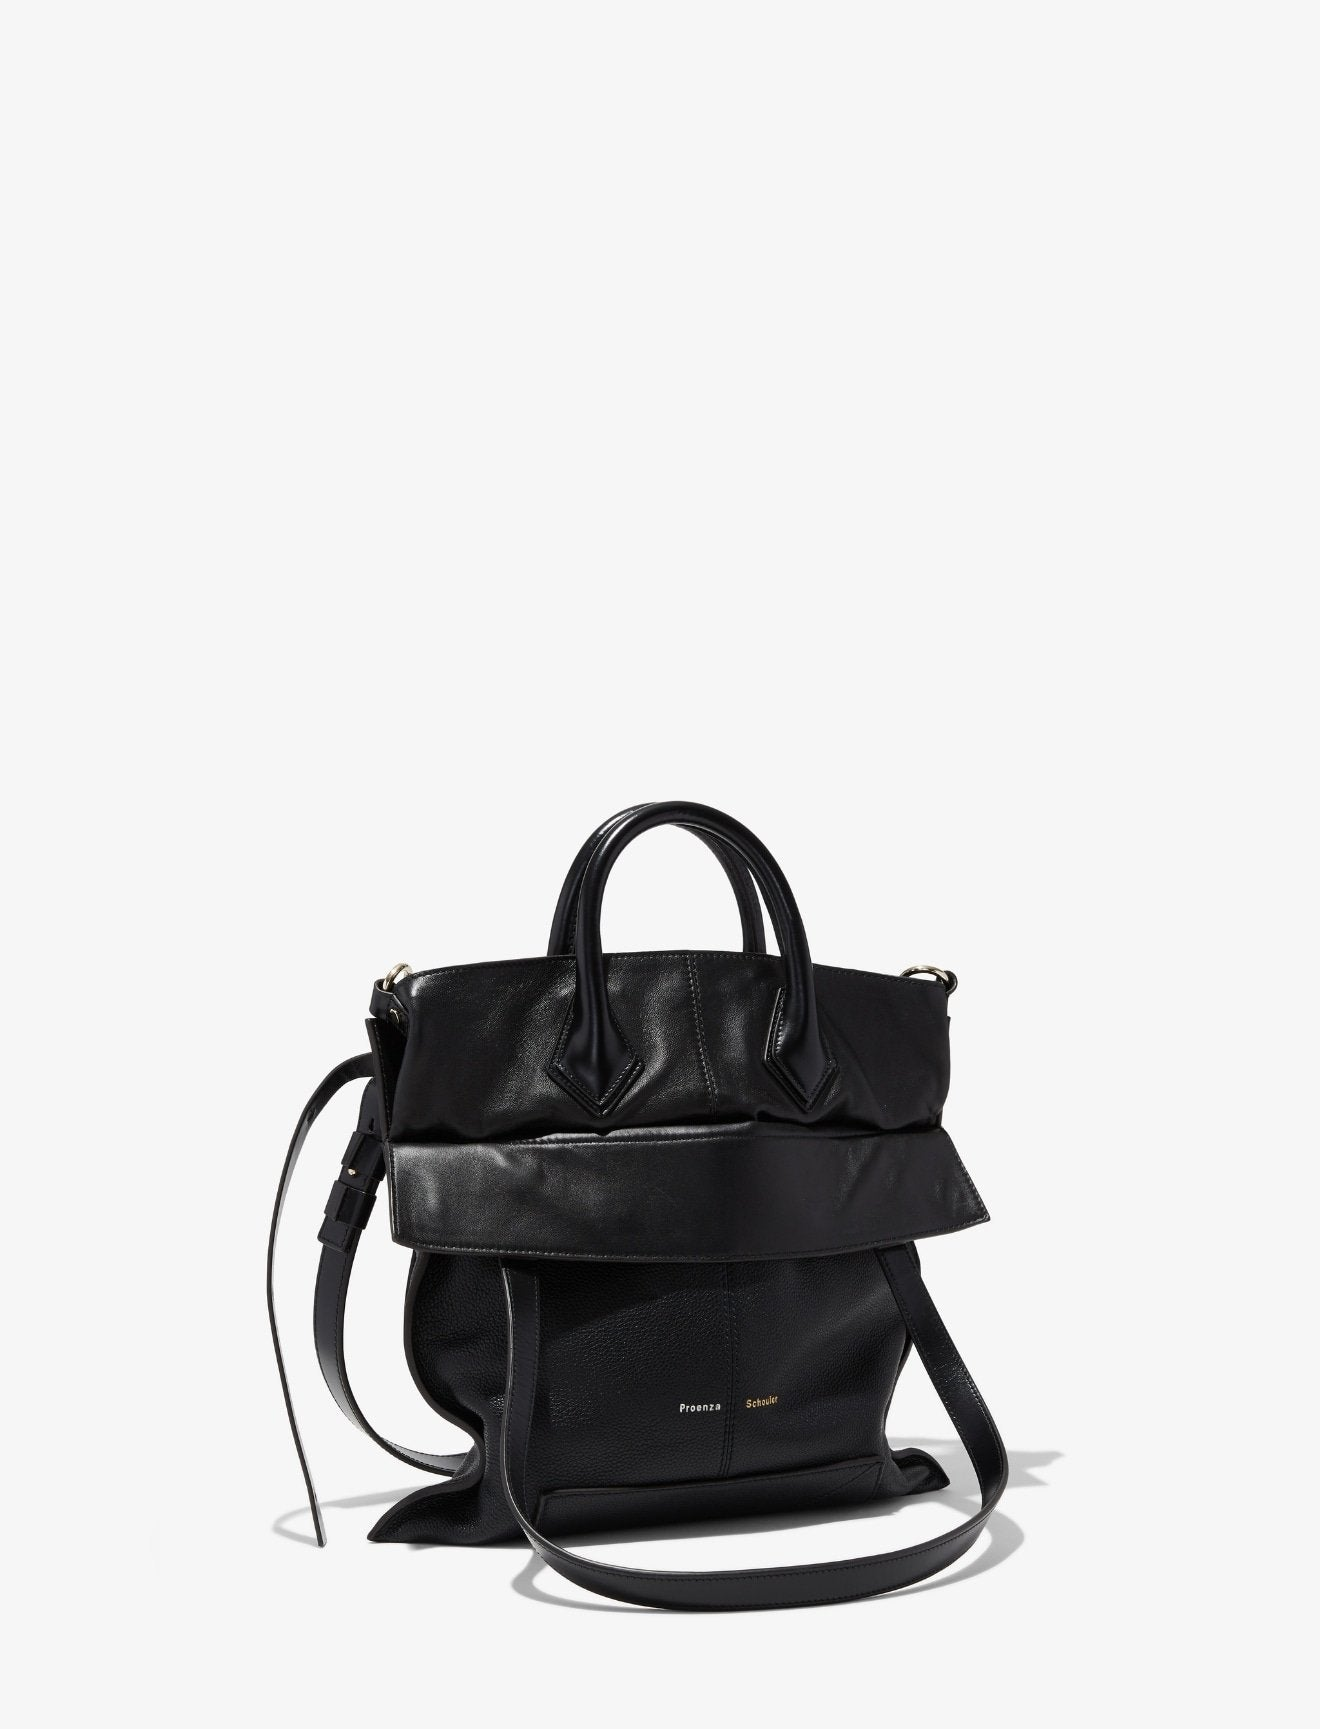 Proenza Schouler LLC BAG BLACK Proenza Schouler | PS19 Small - Black Grainy Leather